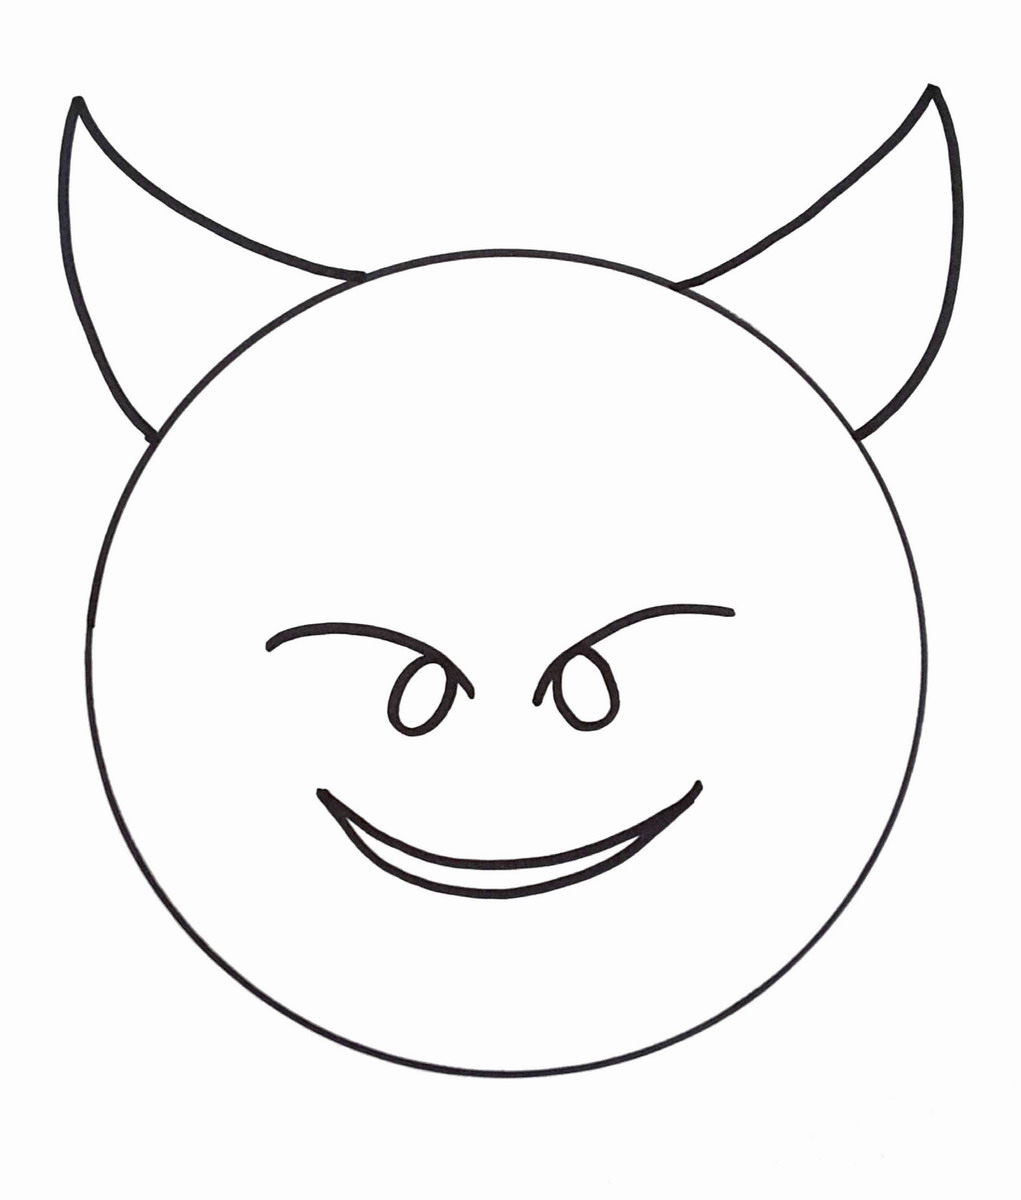 It is a photo of Breathtaking Emoji Printable Coloring Pages